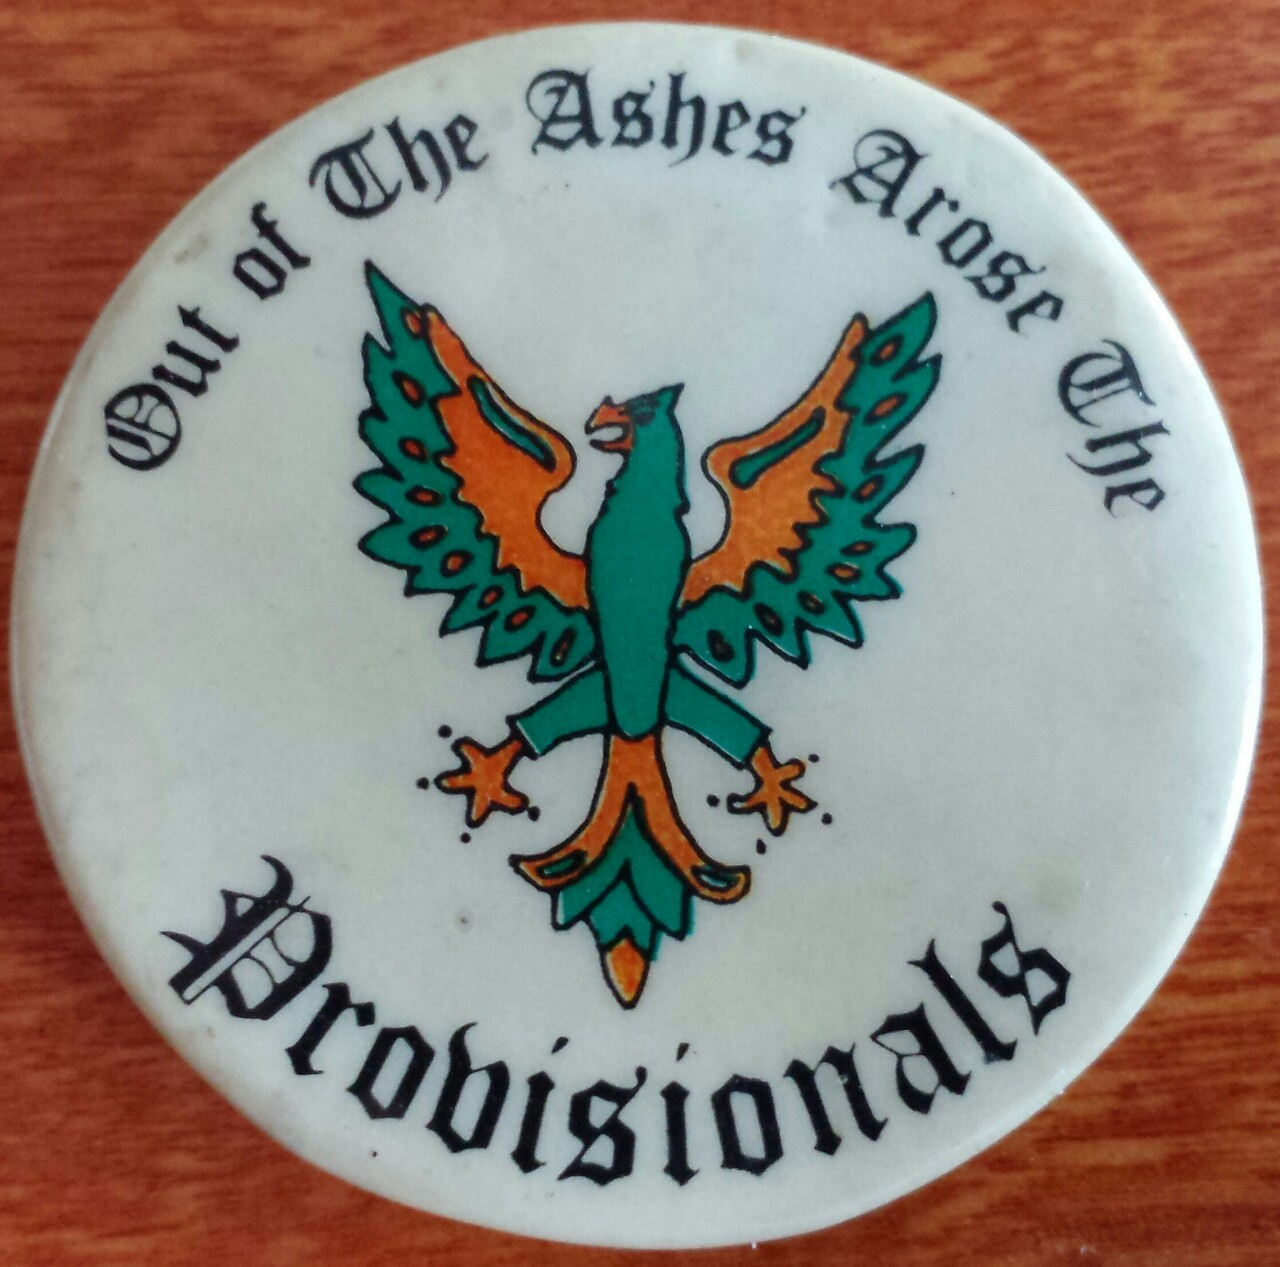 provisional irish republican army Overview the provisional irish republican army (universally known as the ira, or provos) is ireland's preeminent nationalist paramilitary organization a modern successor of the old irish republican army that had fought the anglo- irish war, it formed following a split with the official ira in 1969 thereafter, its violent.